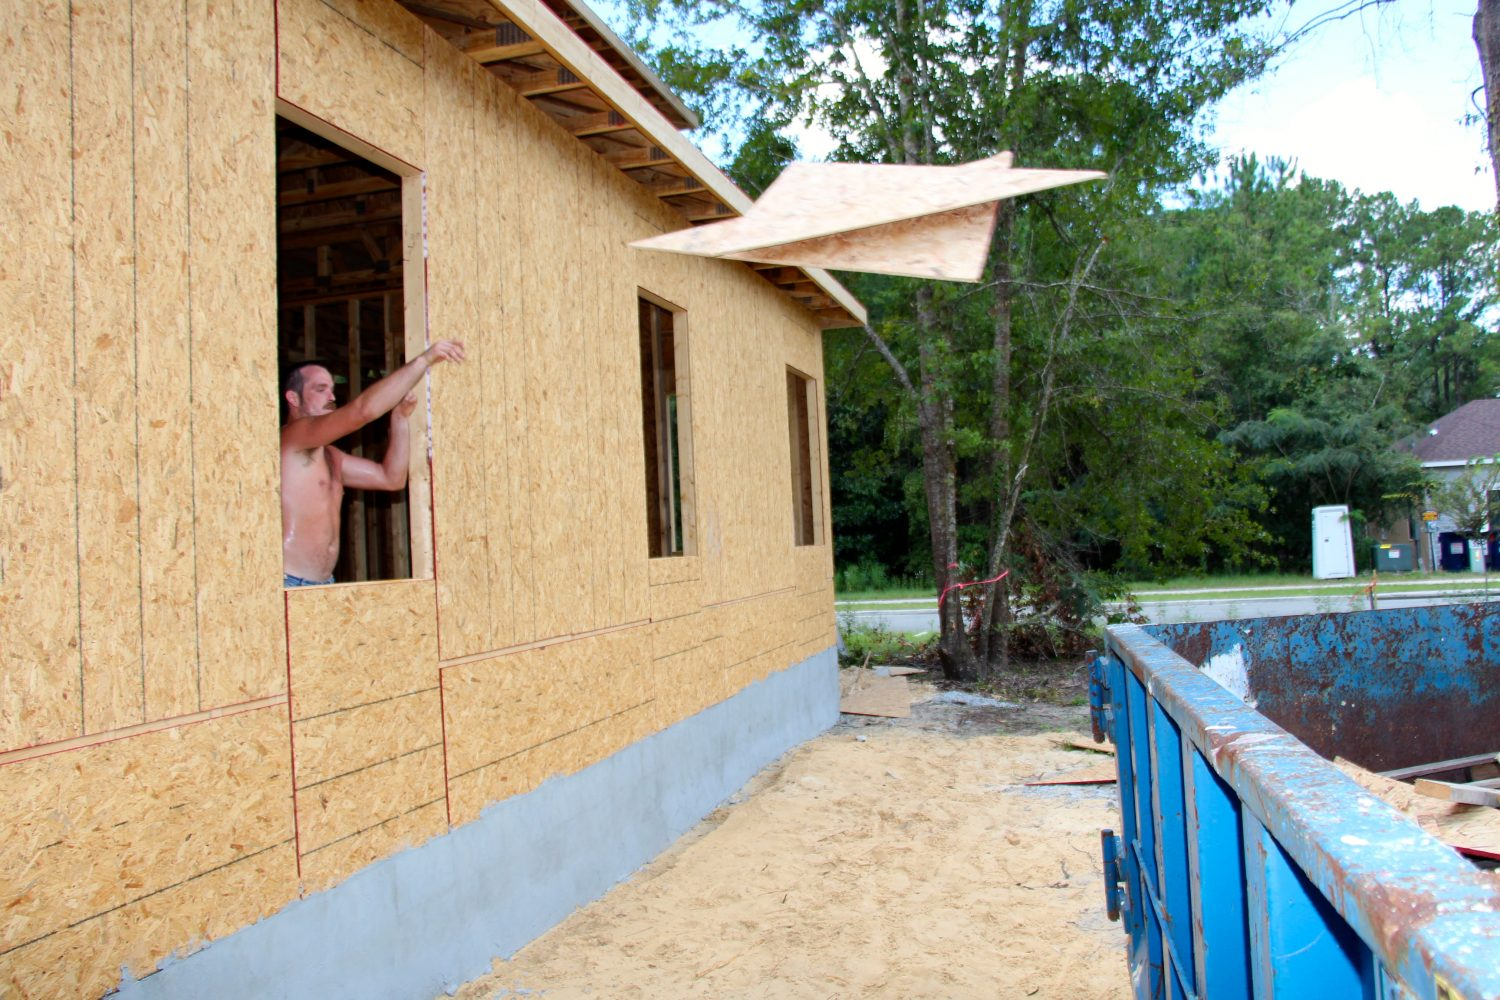 William Addison, 27, throws out excess house construction materials Friday afternoon.